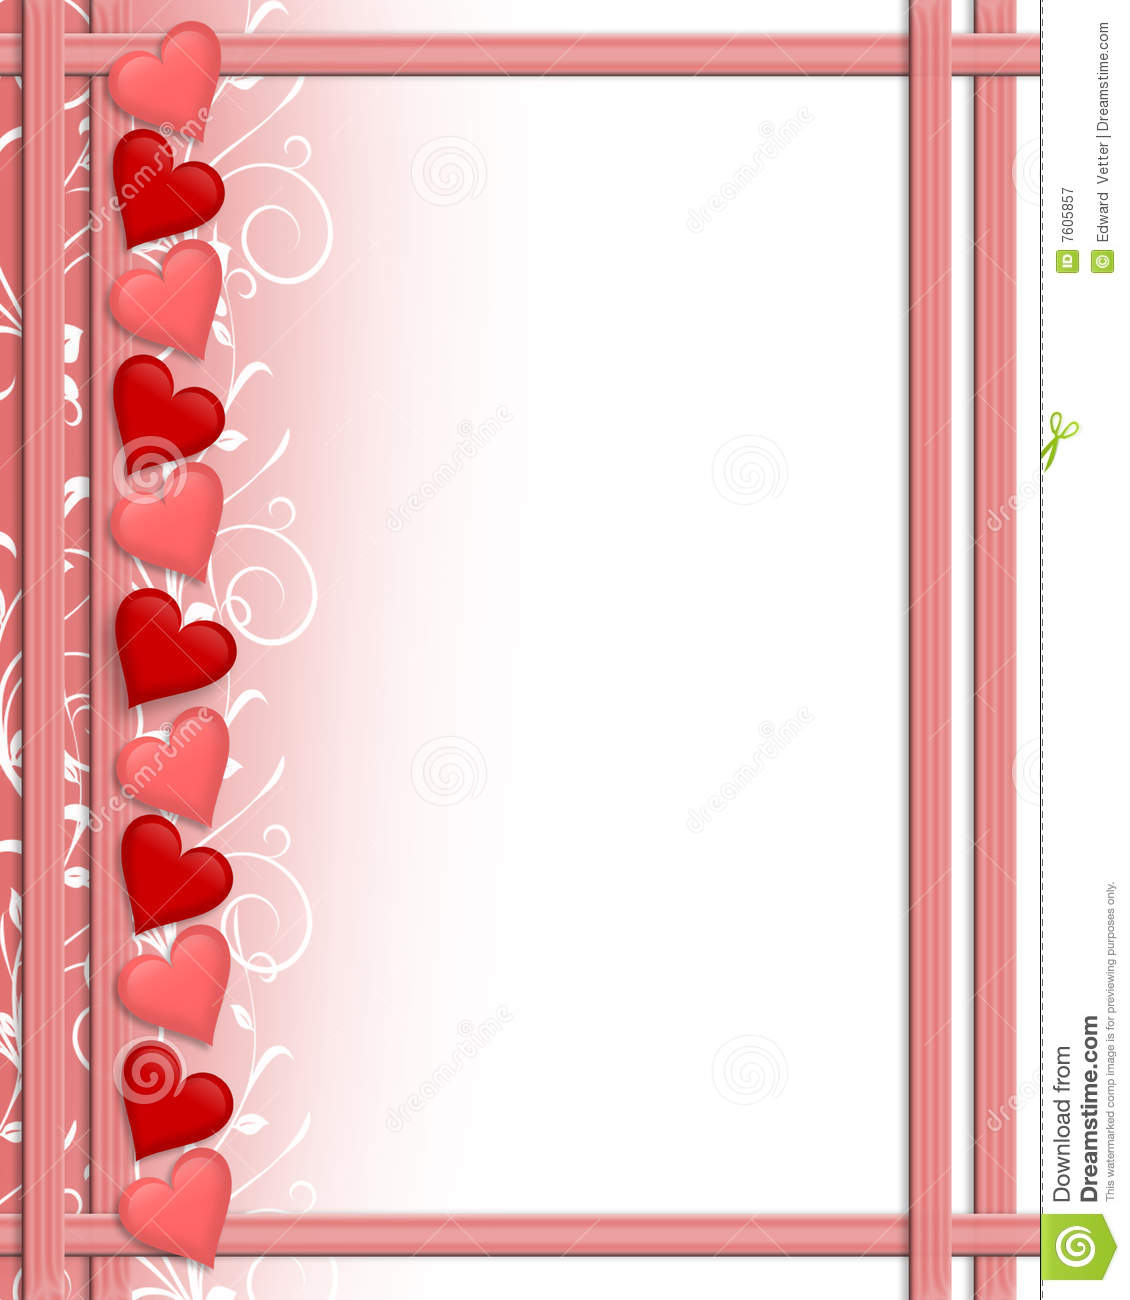 Valentines Day Hearts Border Royalty Free Stock ...